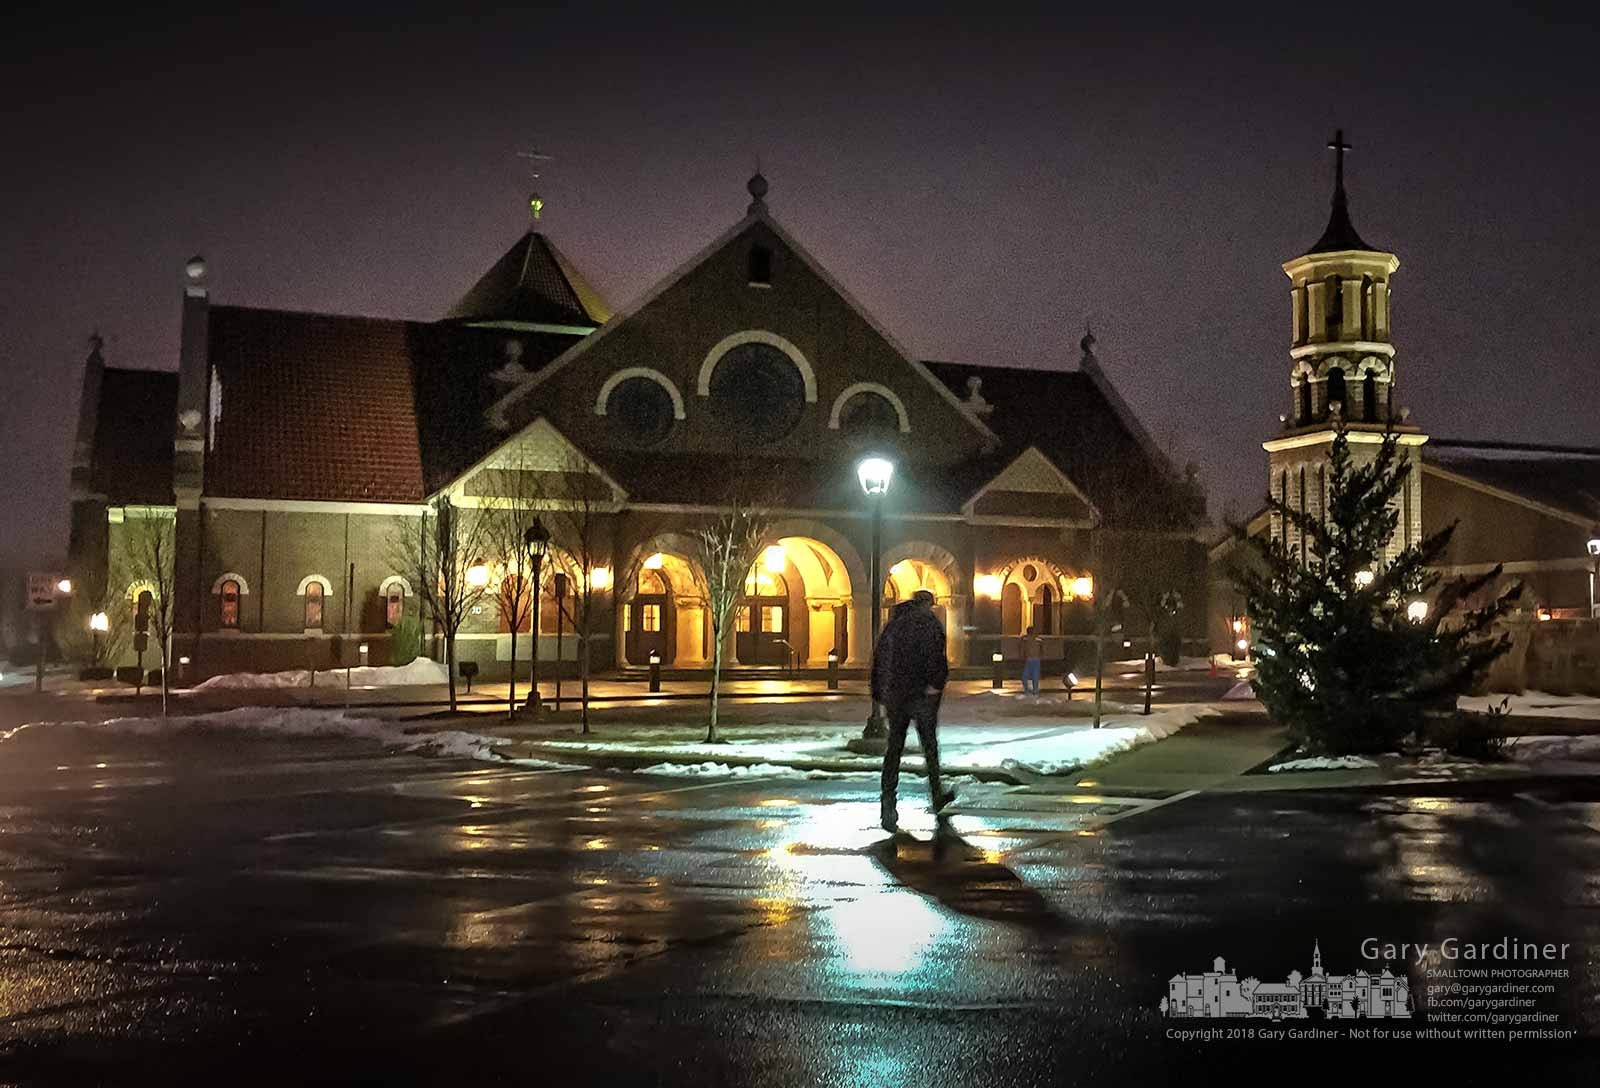 A parishioner steps across pavement west from melting snow as he makes his way to the early Sunday Mass at St. Paul the Apostle Catholic Church in Westerville, Ohio. My Final Photo for Jan. 21, 2018.